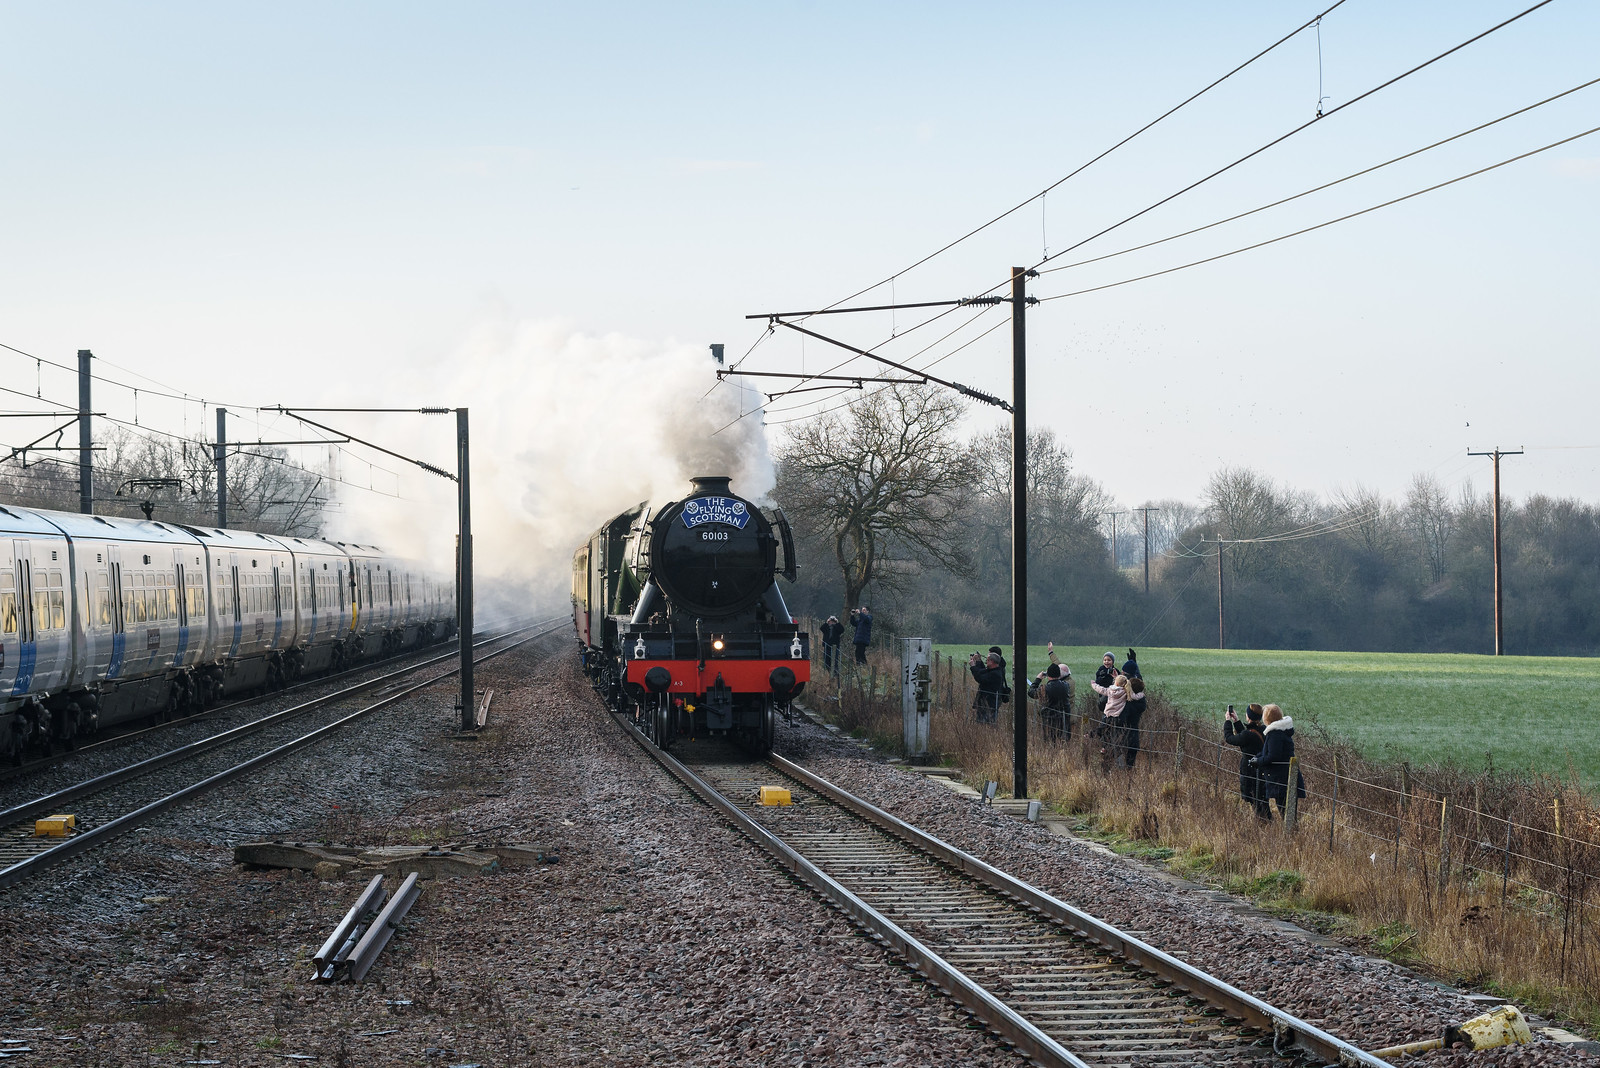 Scotsman flying past the path